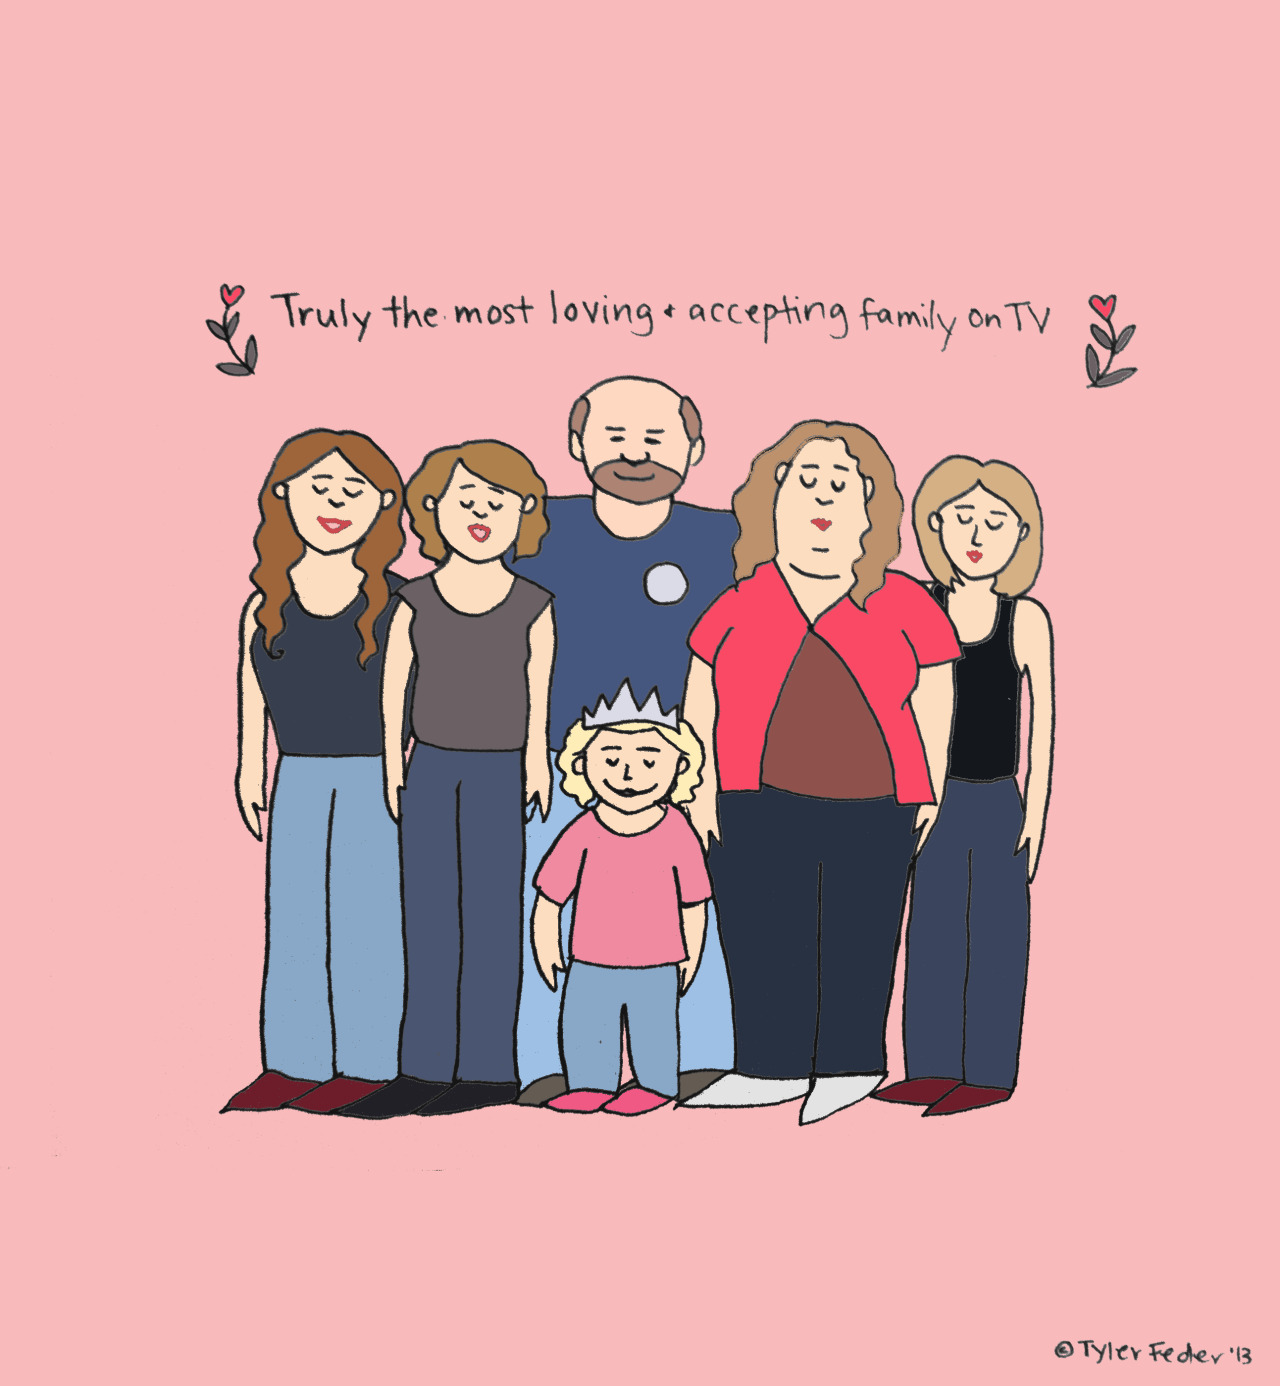 A small tribute to Honey Boo Boo and family (by Tyler Feder)